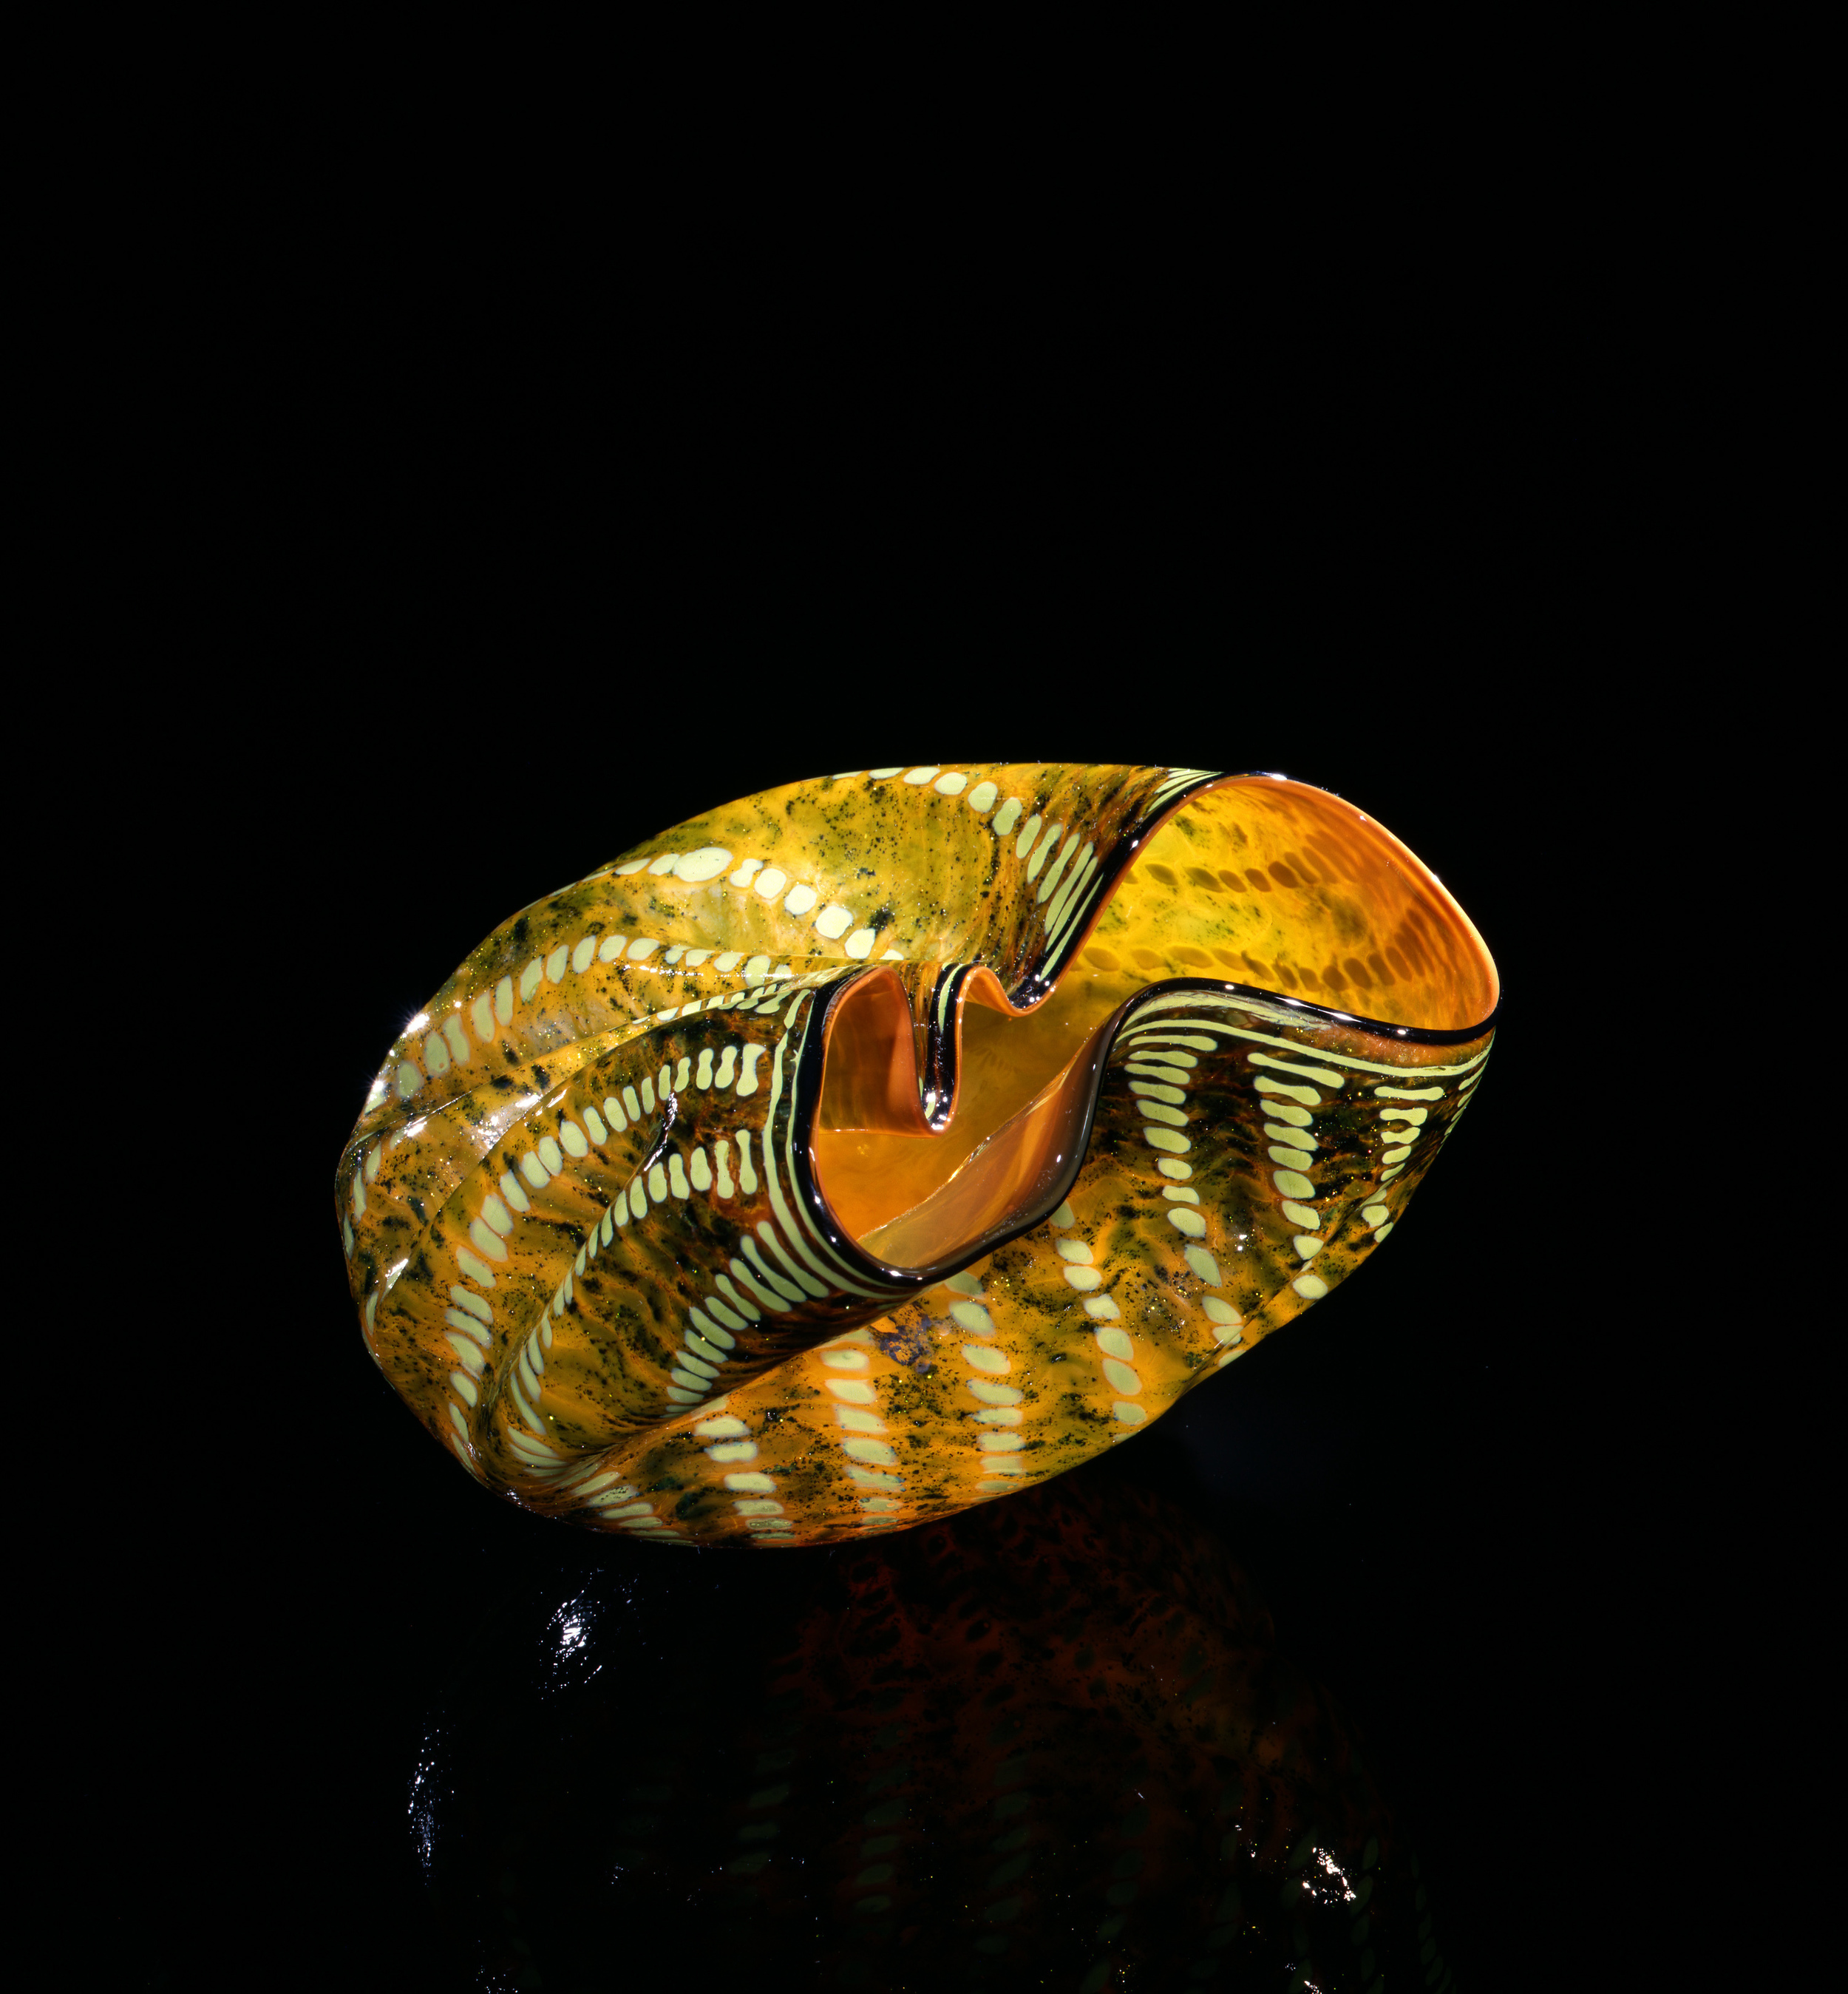 Dale Chihuly, Saffron Macchia with Umber Lip Wrap (1981, glass, 5 x 9 x 7 inches), DC.109